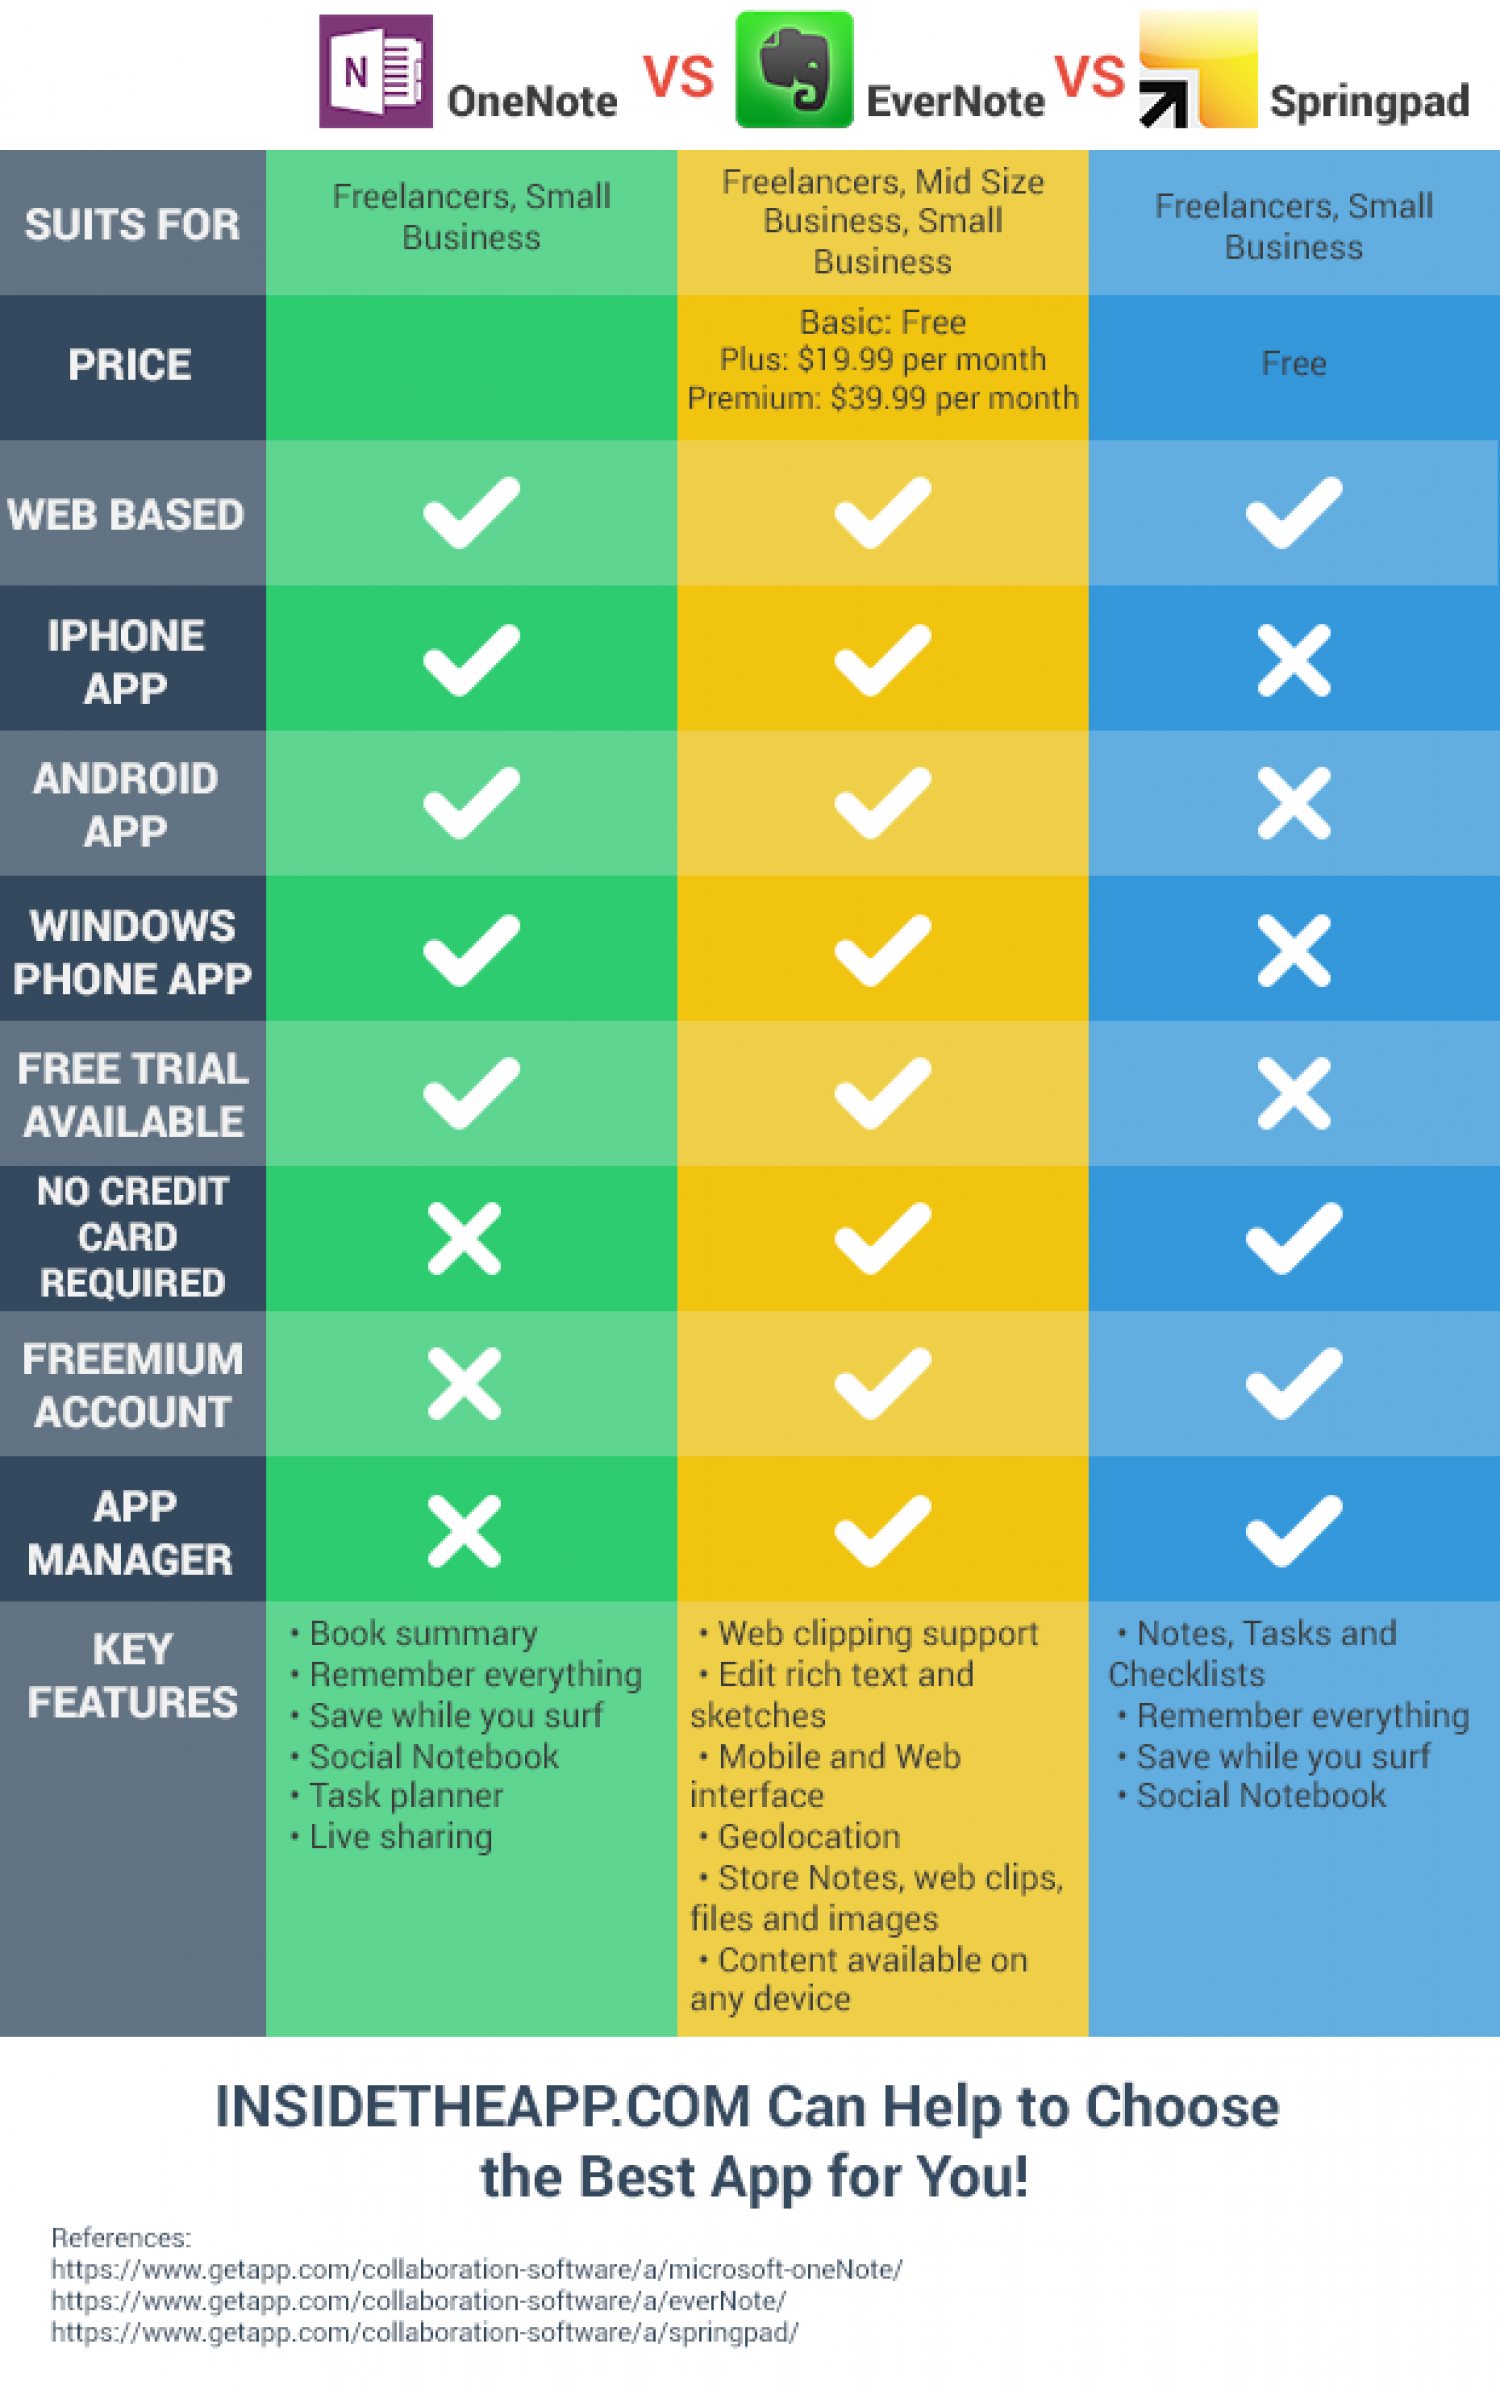 OneNote vs Evernote vs SpringPad Infographic